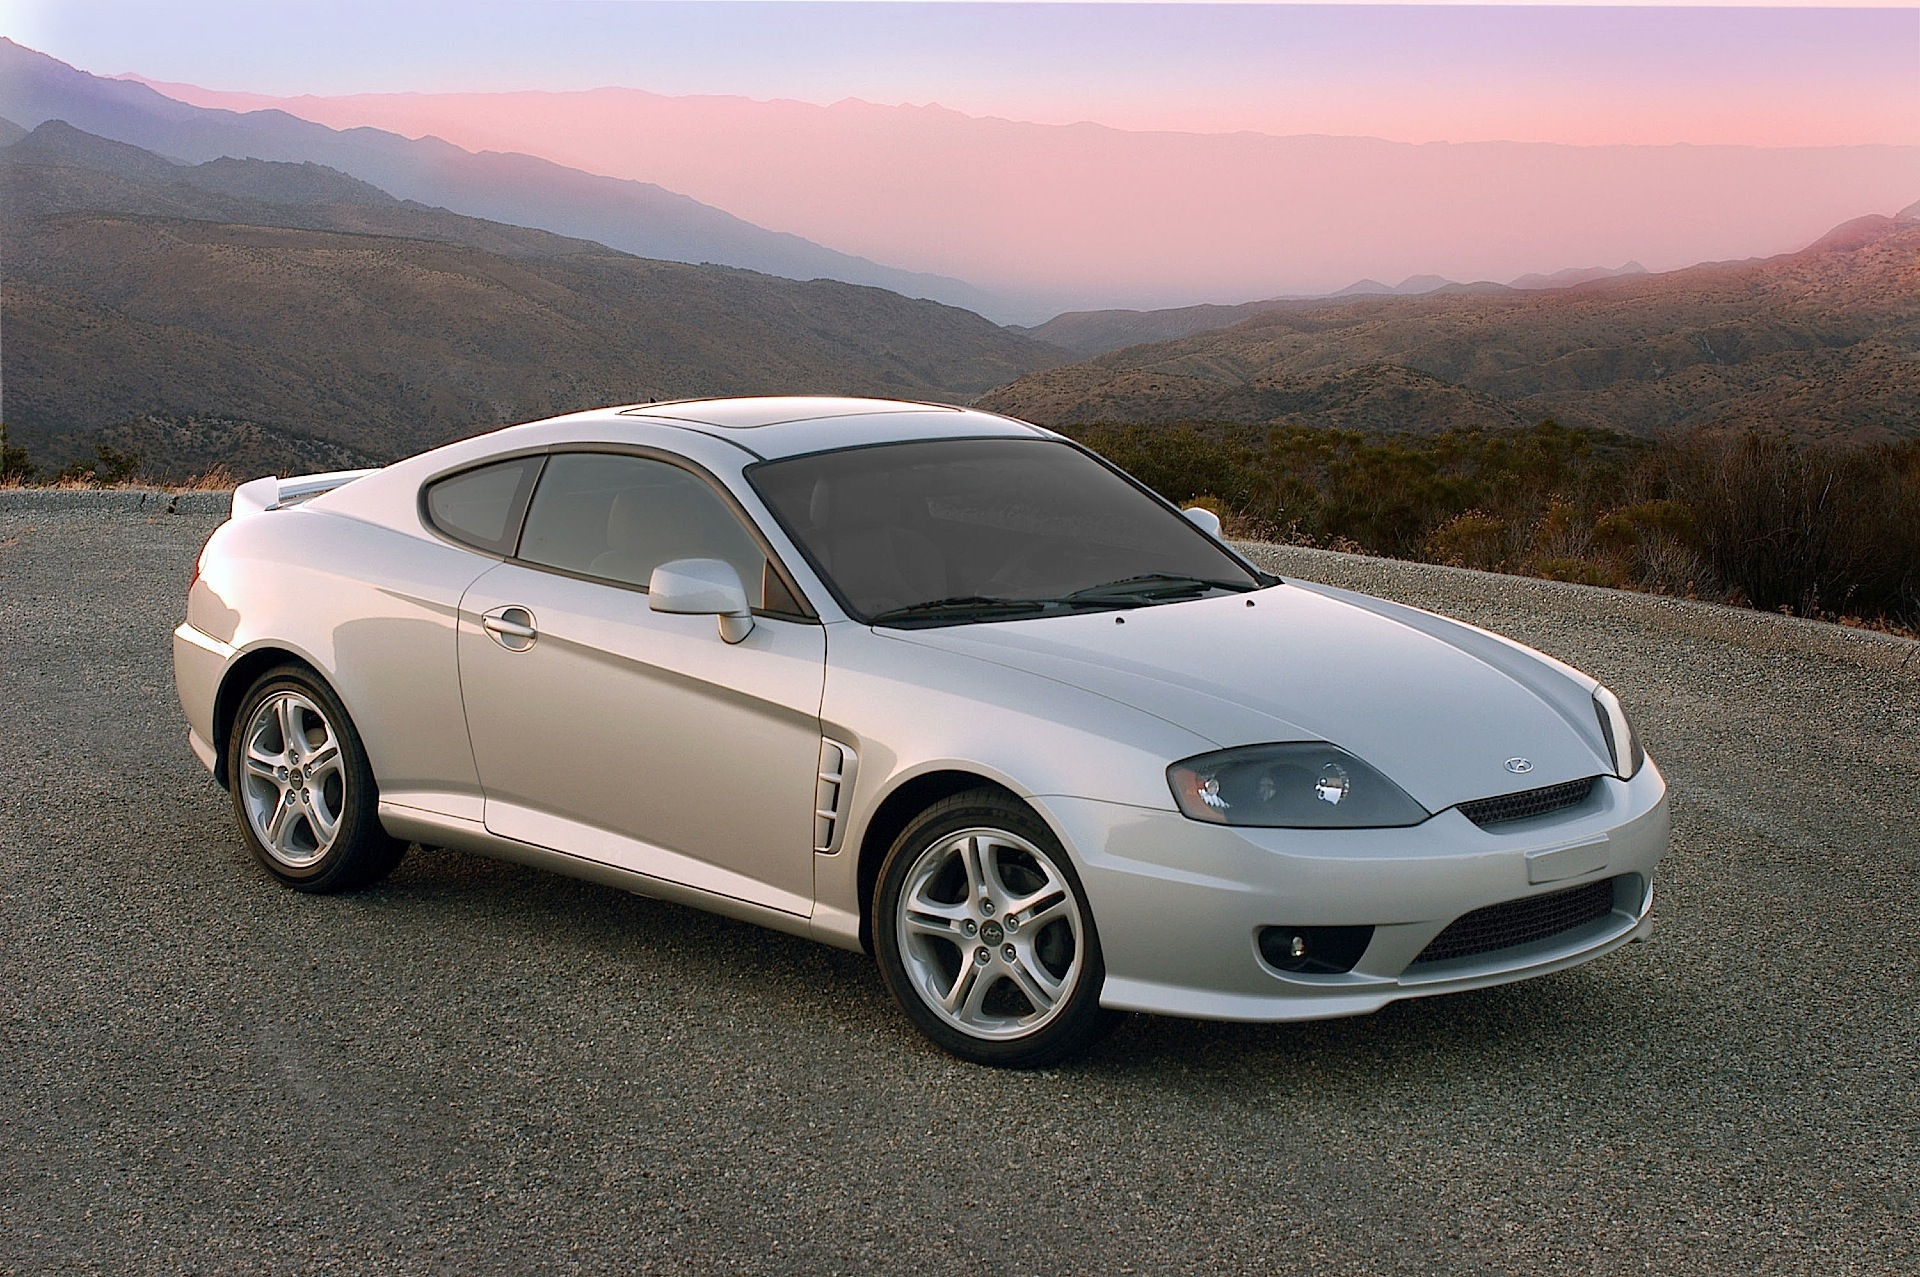 hyundai coupe tiburon specs 2004 2005 2006 2007 autoevolution. Black Bedroom Furniture Sets. Home Design Ideas